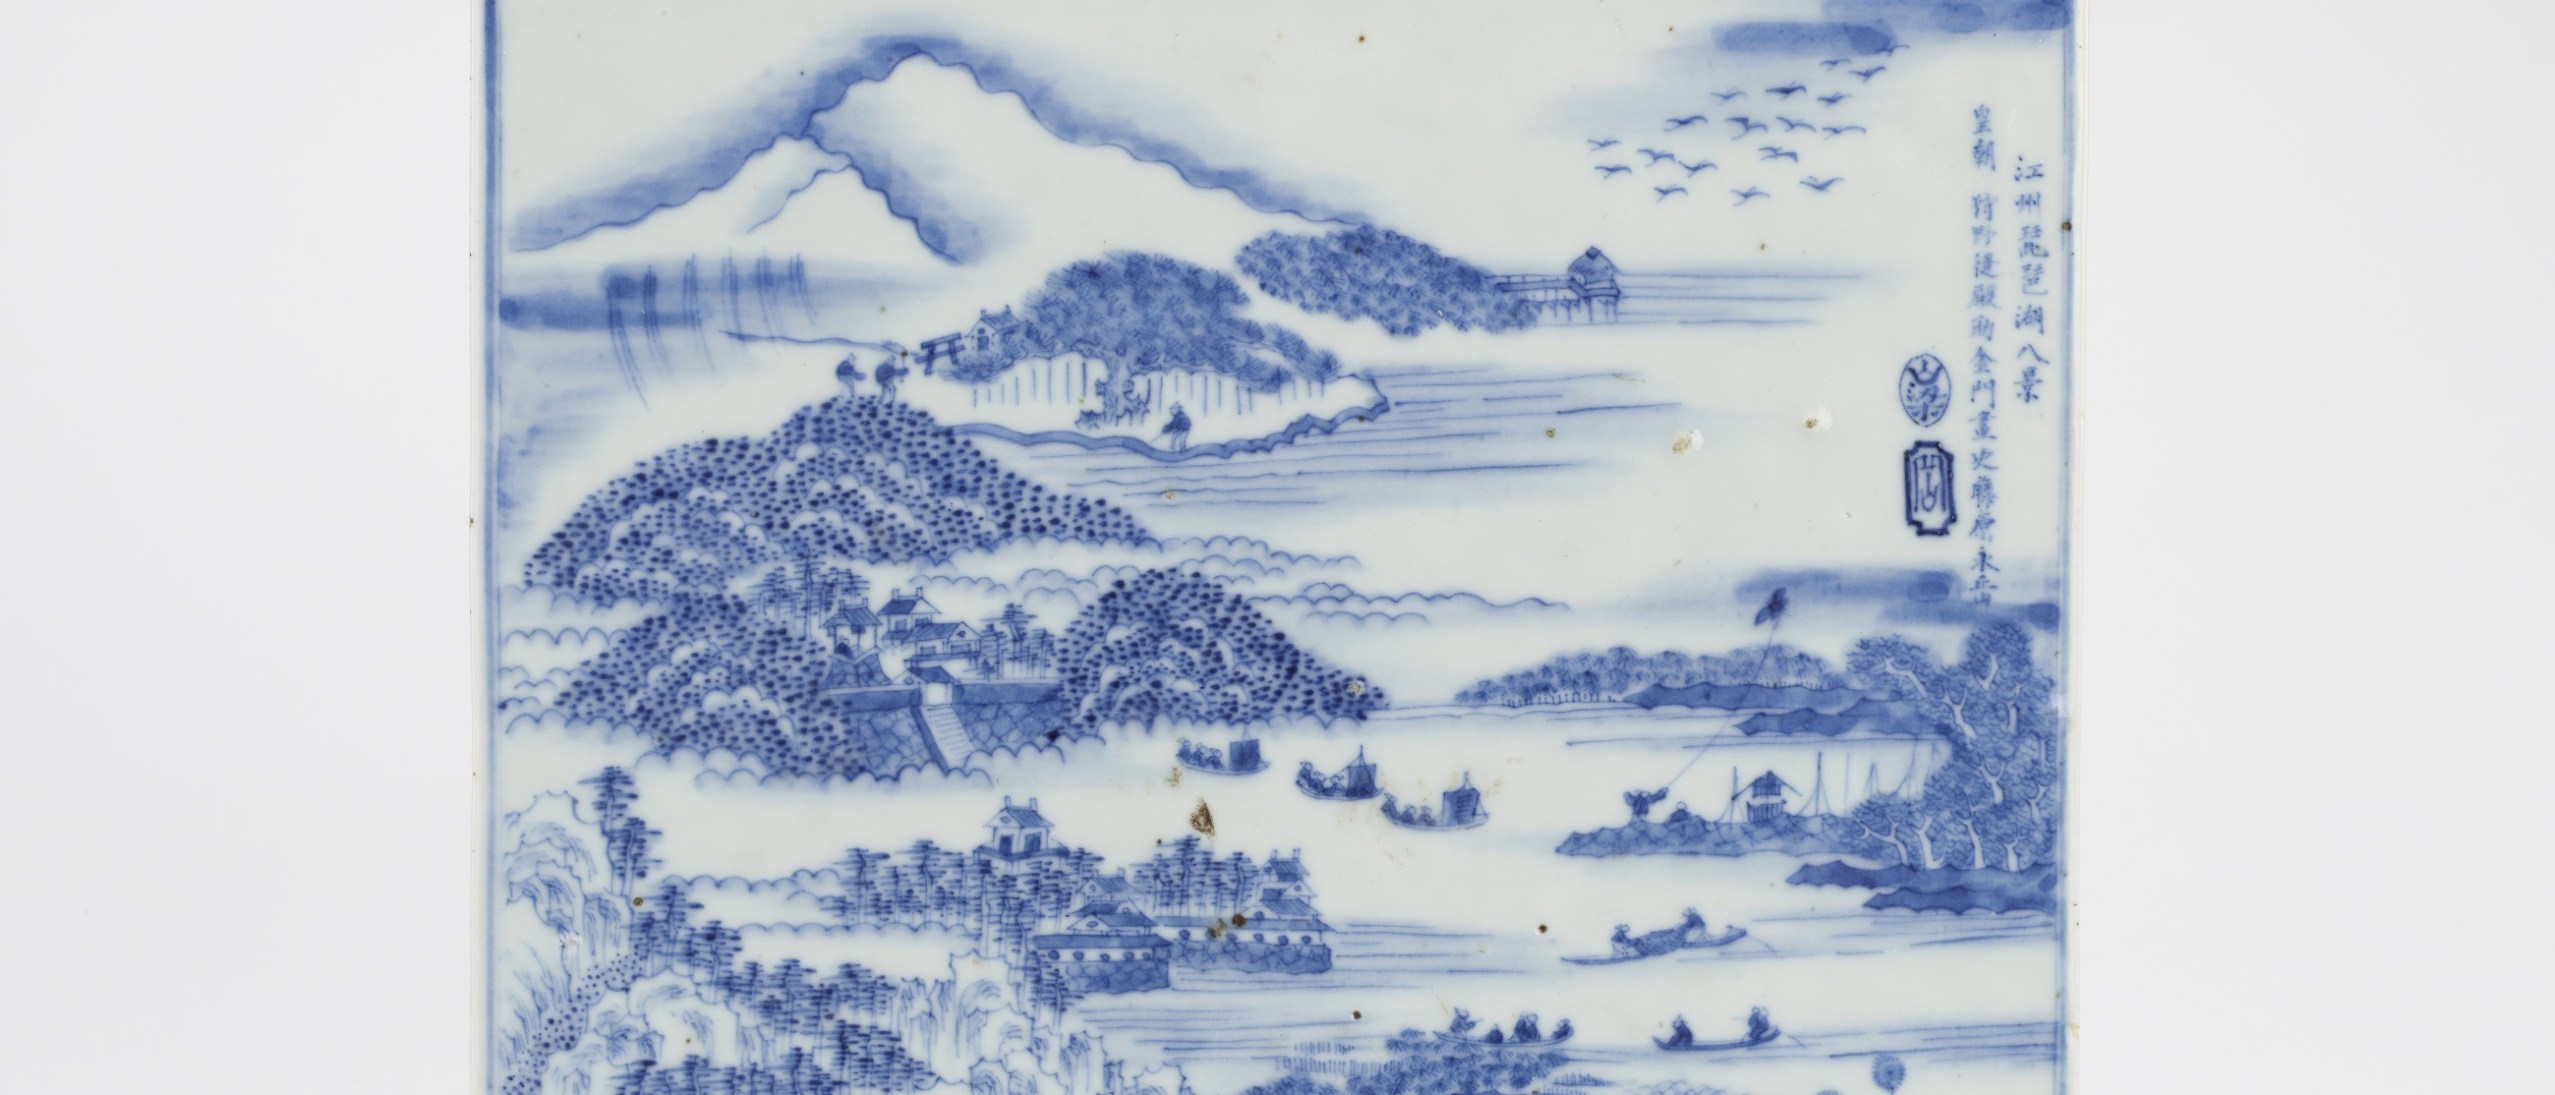 Detail photo of Drawing by Kano Eigaku (1790–1867) China, Jingdezhen, Tao Zhen workshop Qing dynasty, Jiaqing era, 1813 Porcelain with cobalt pigment under clear glaze 4.0 x 28.8 x 26.2 cm Gift of Ian and Mary Heriot Freer Gallery of Art F2017.4